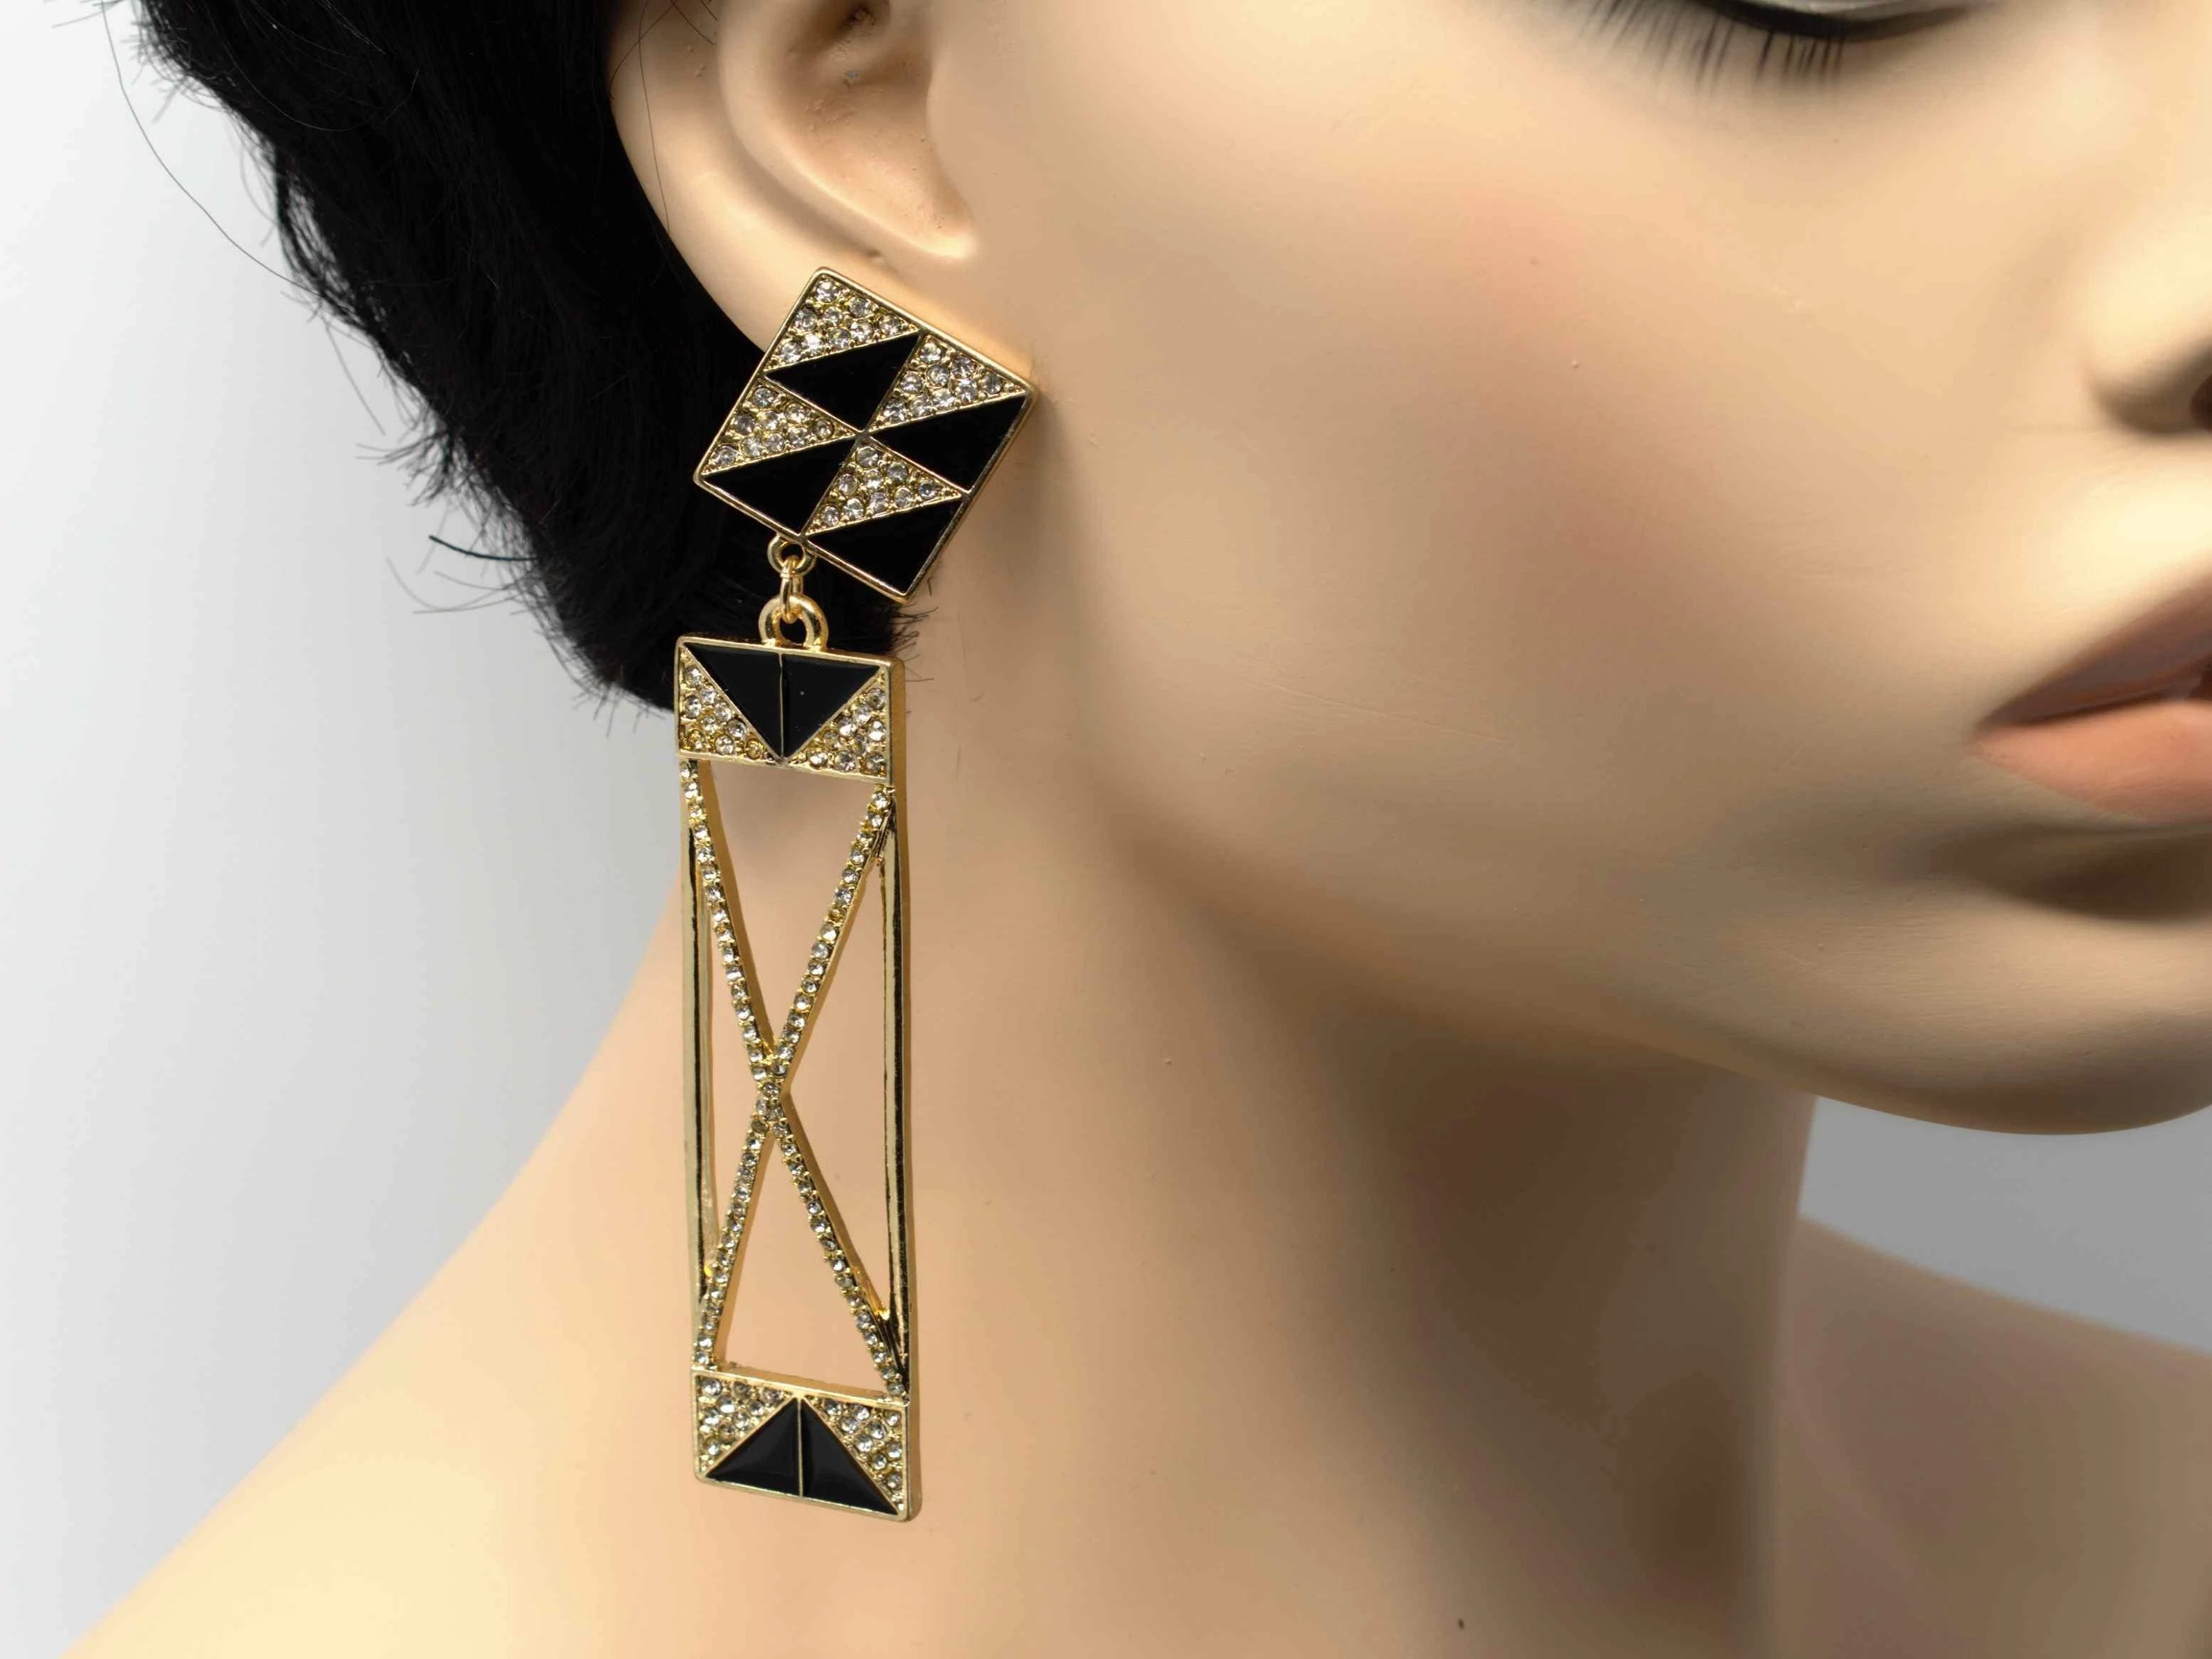 A gold dangle drop chandelier earring with stone accents and a push back clasp.